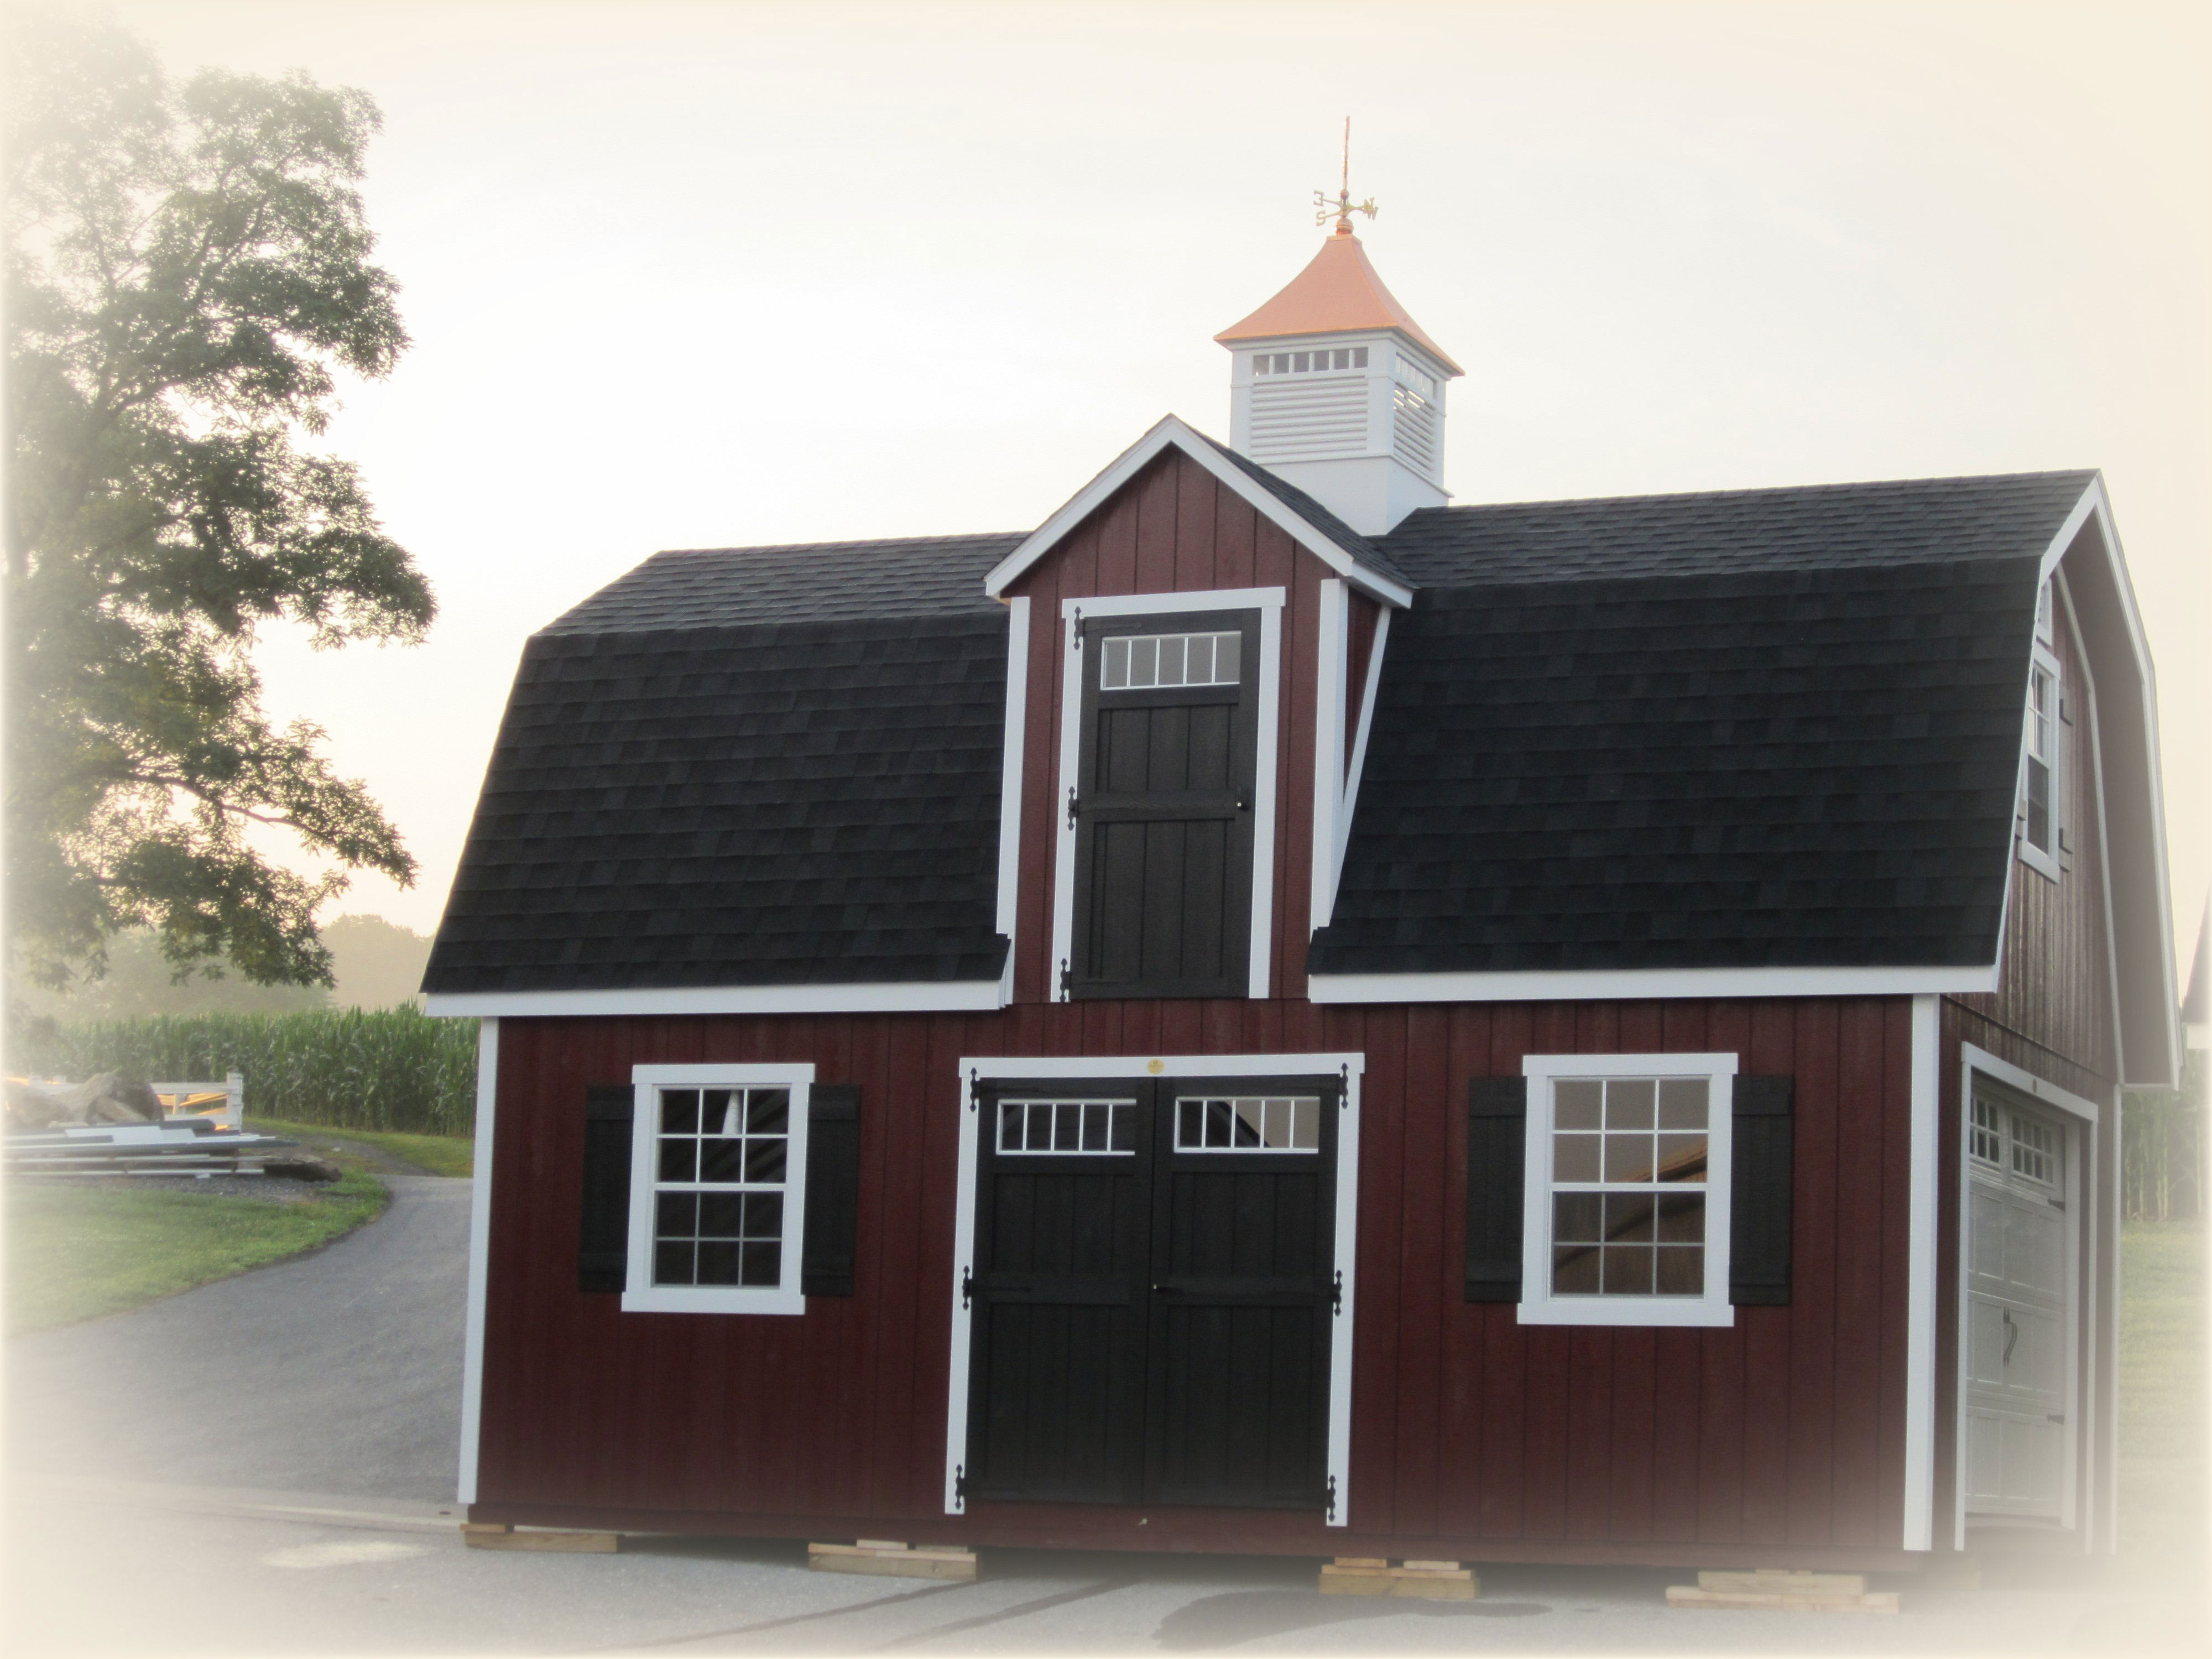 Amish Barn Construction & Woodwork in Oneonta, NY | Amish